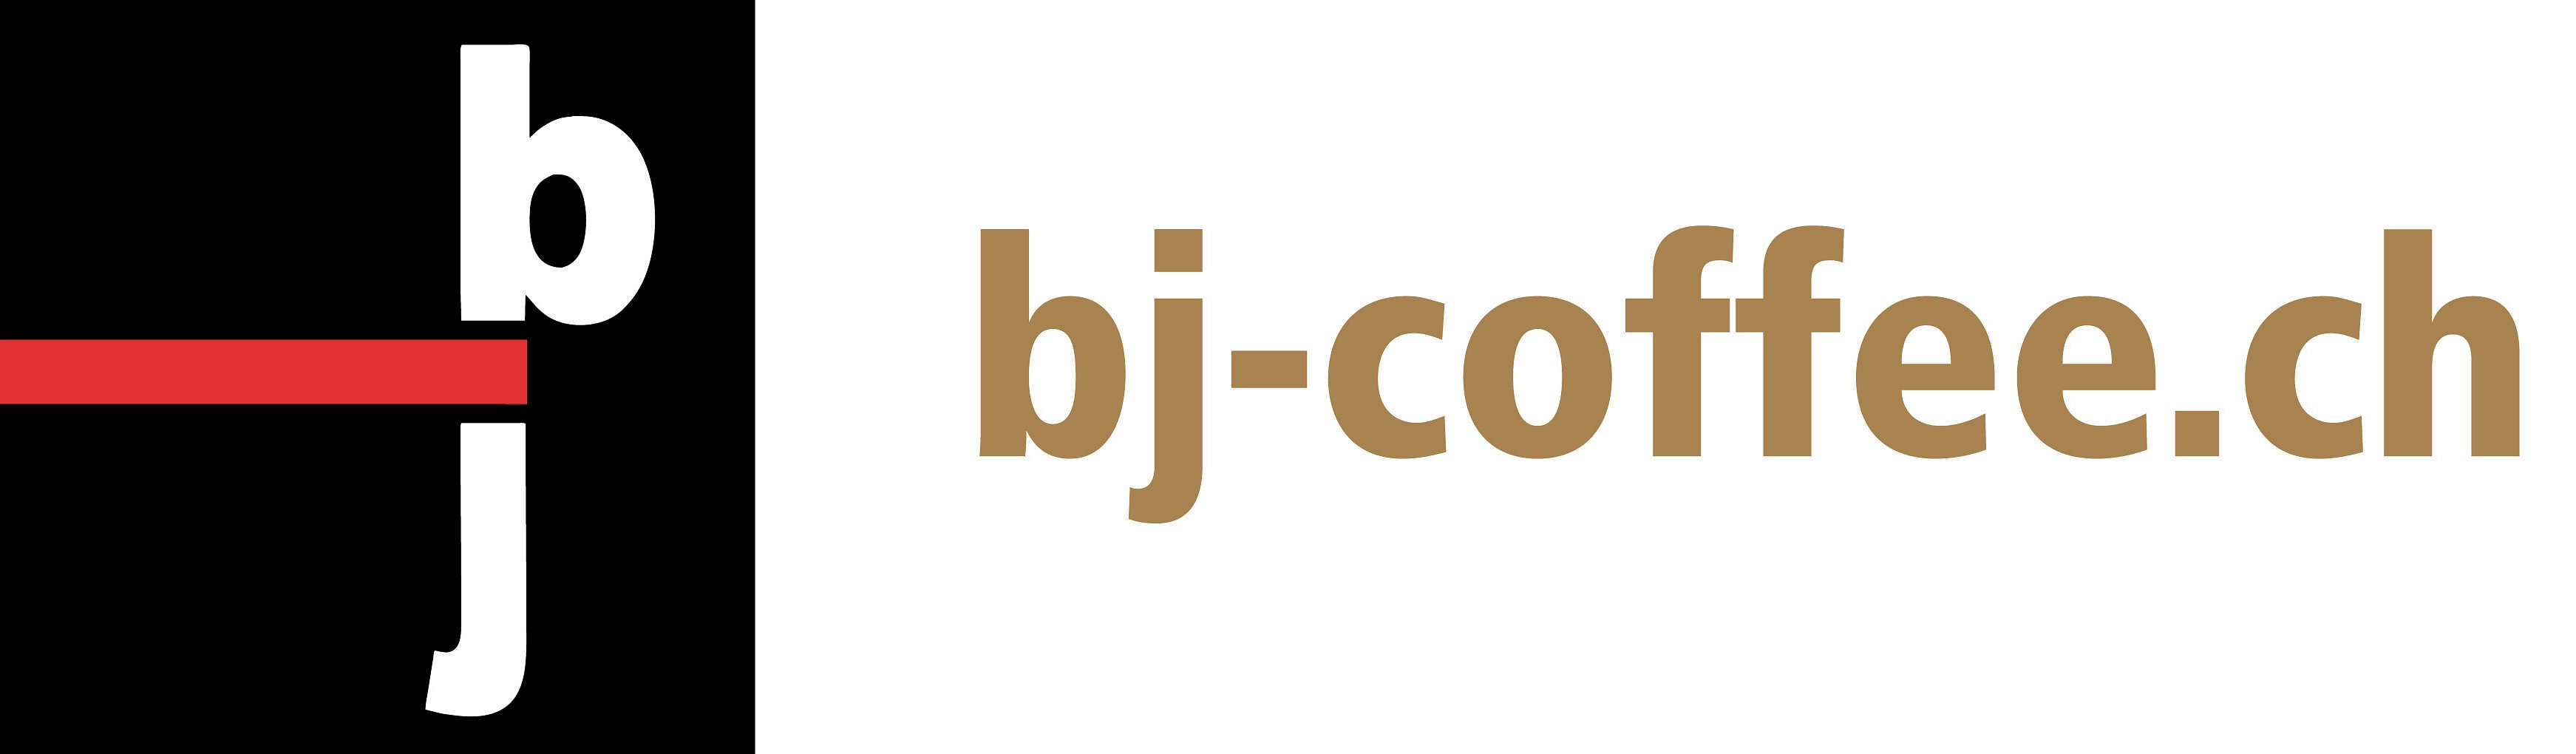 bj-coffee SA